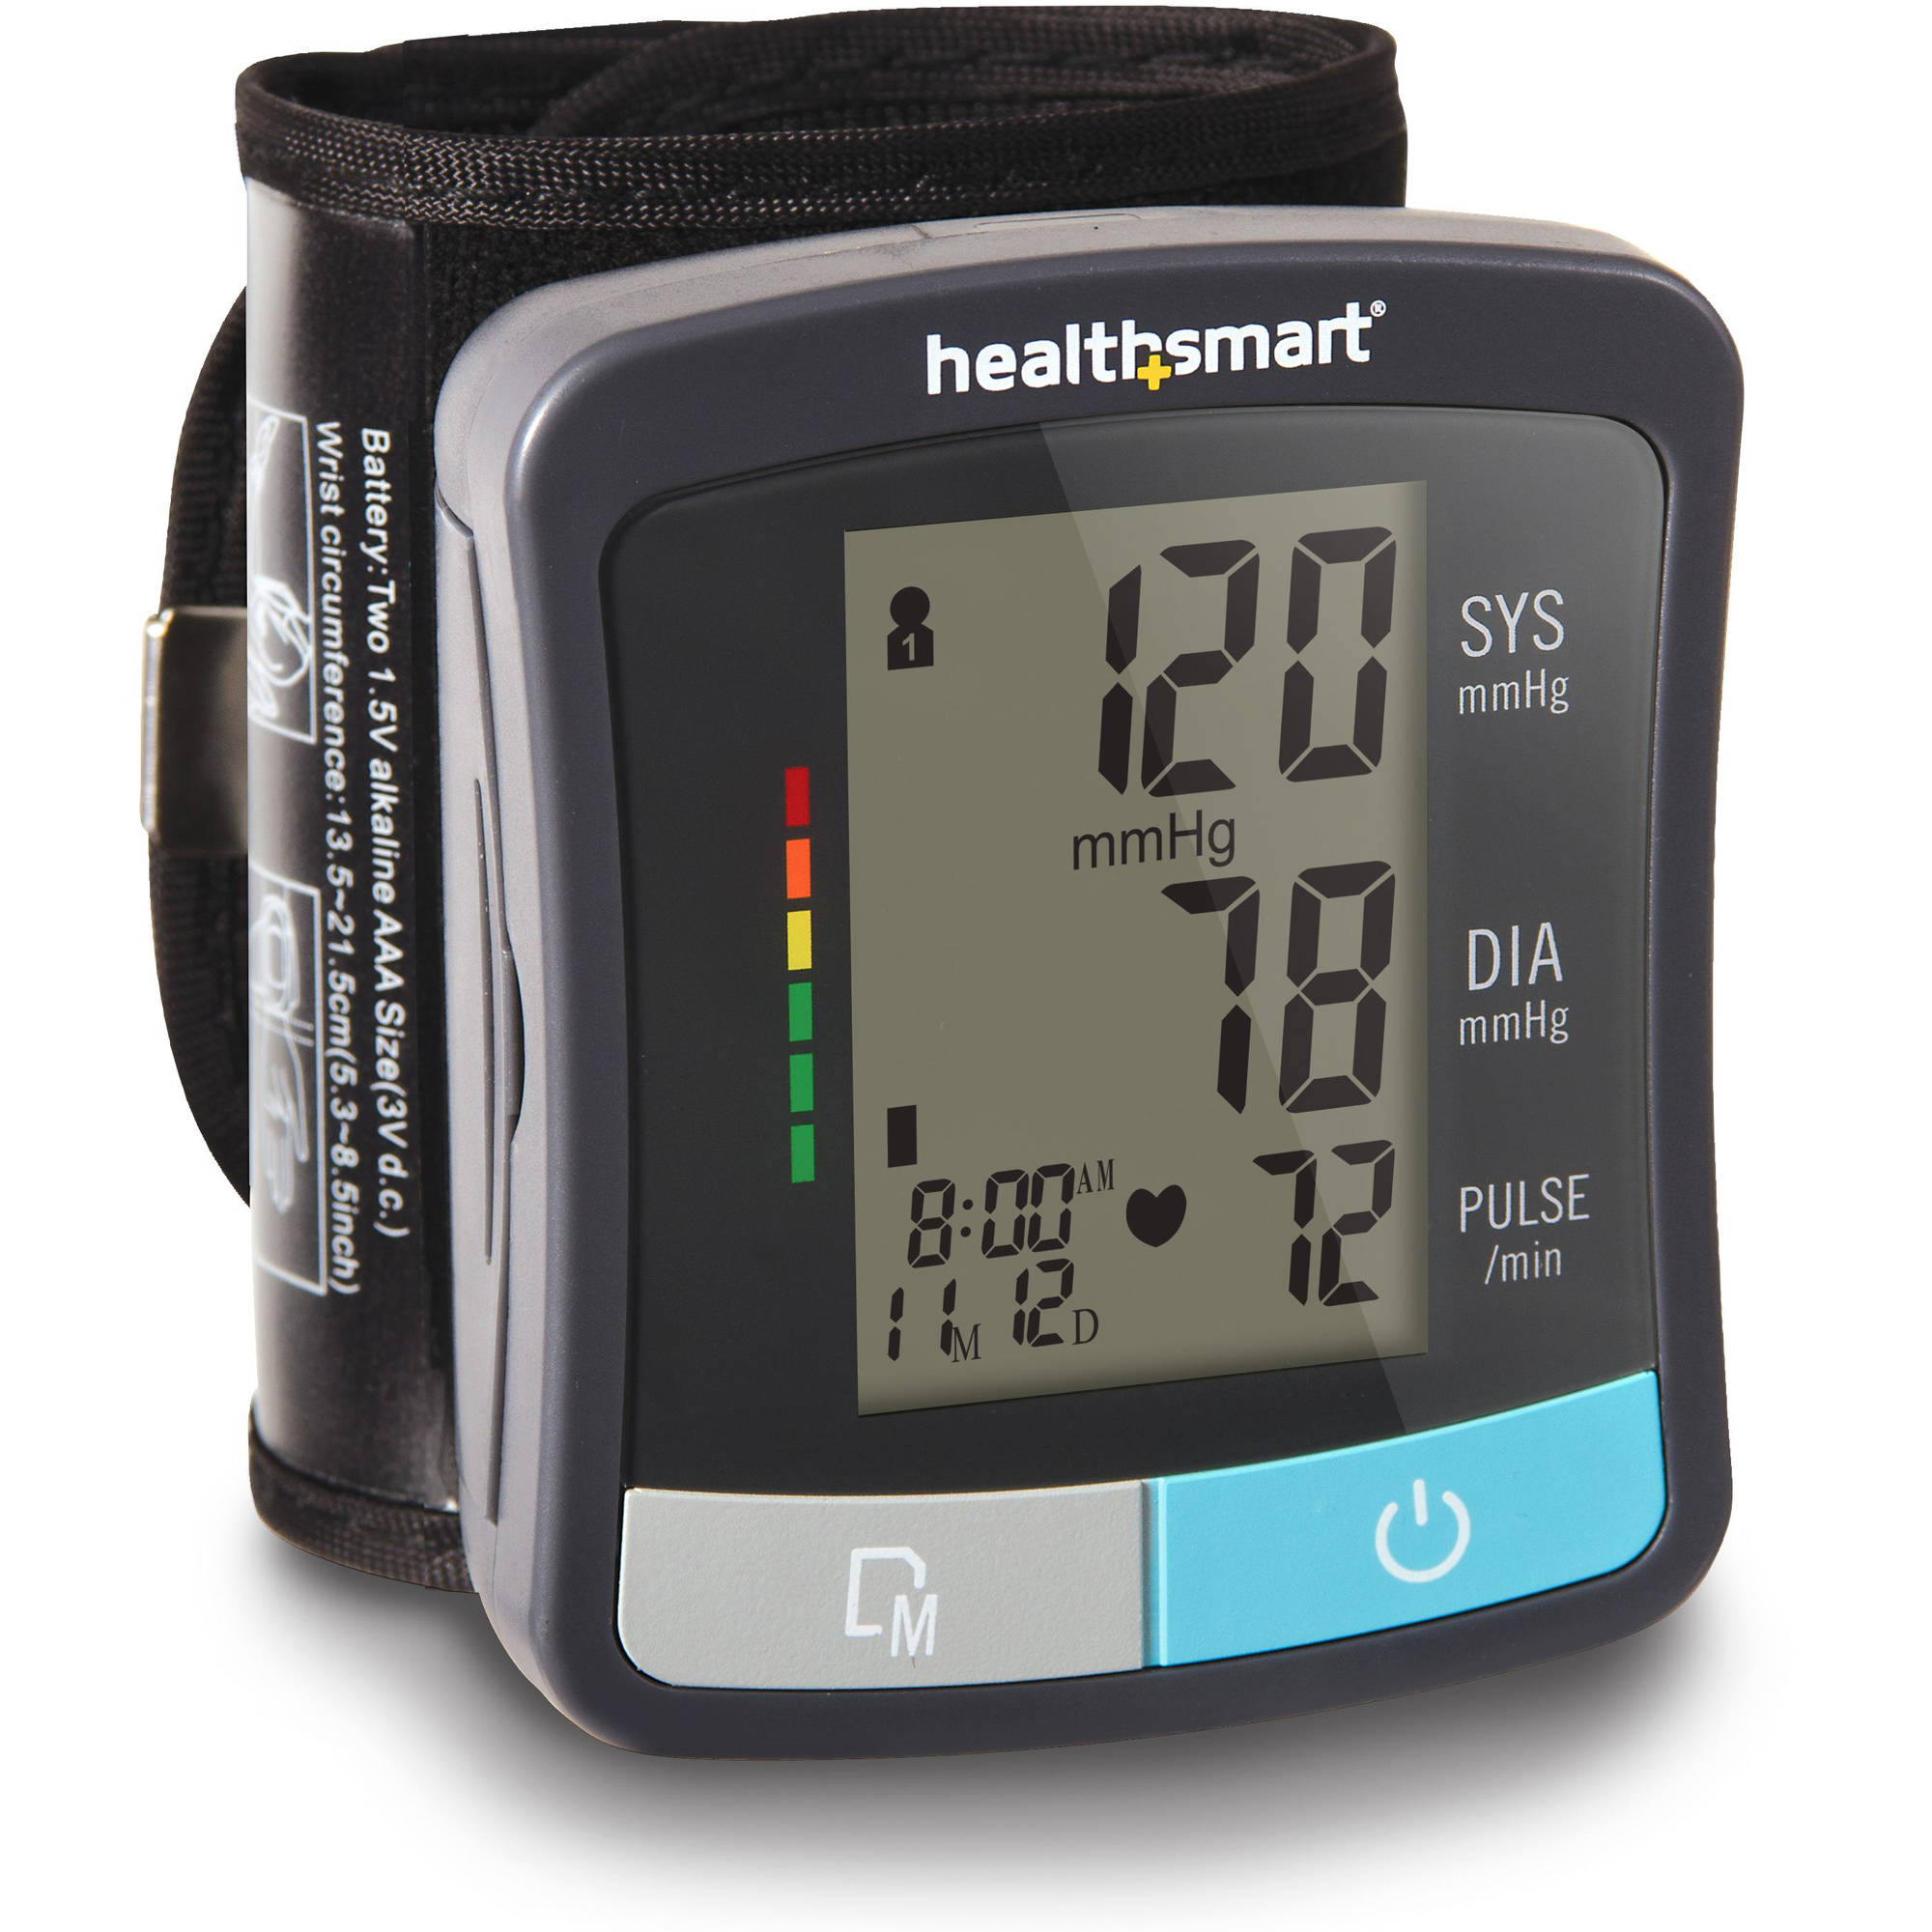 HealthSmart Standard Series Clinically Accurate Universal Automatic Wrist Digital Blood Pressure Monitor with LCD Display and 2 Person Memory, Black and Gray